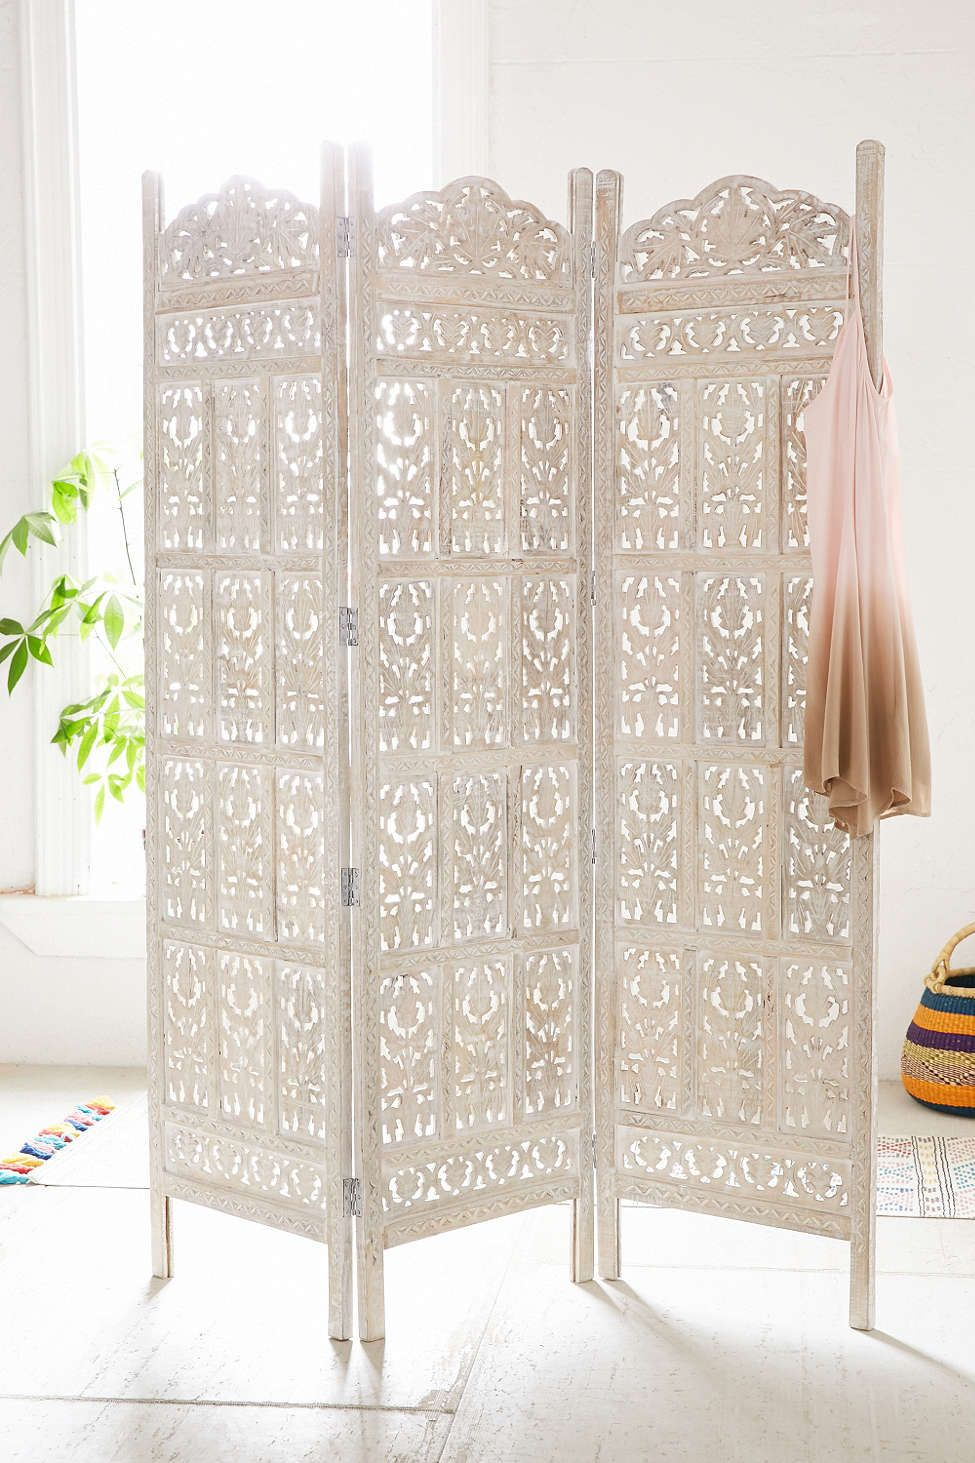 Urban outfitters Amber Carved Wood Room Divider Screen + The Perfume You Will Want to Wear All Summer Long